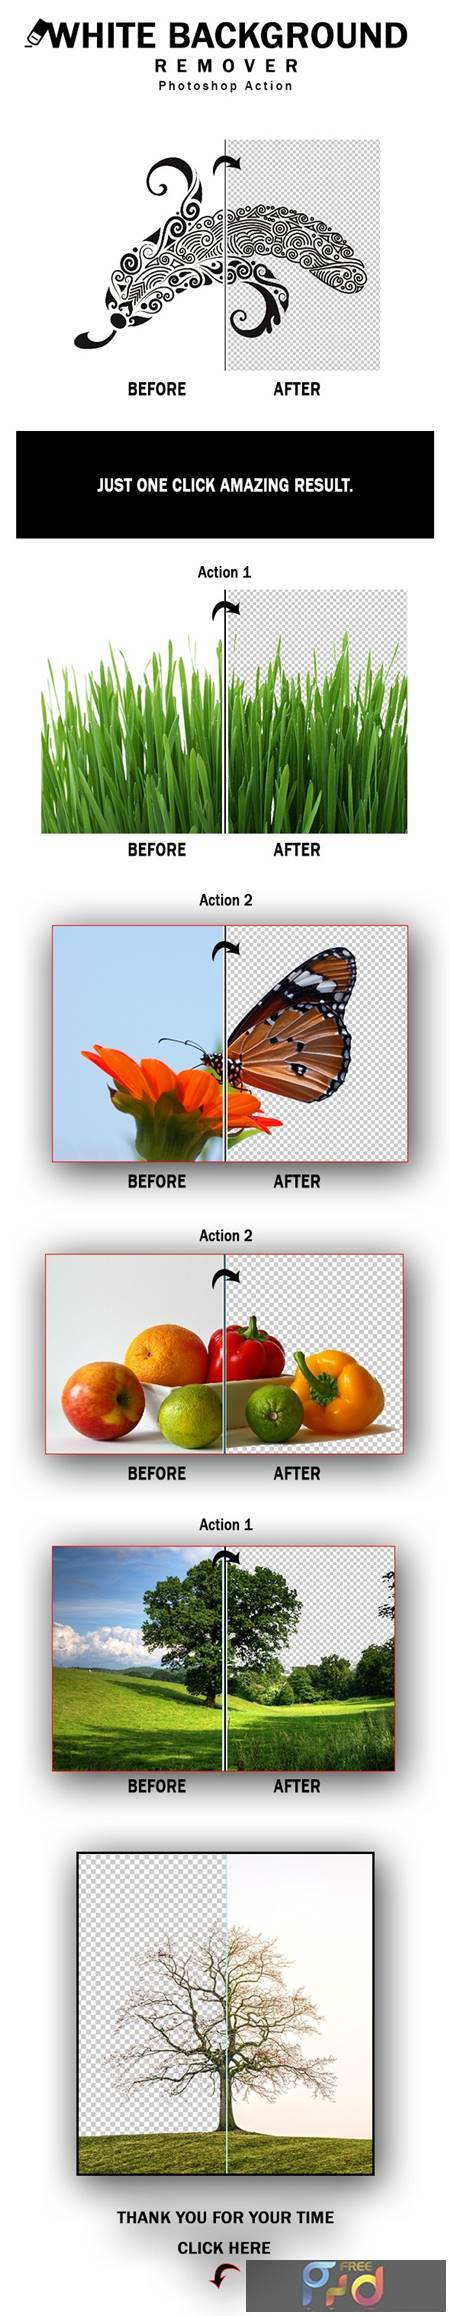 White Background Remover Photoshop Action 25820758 1